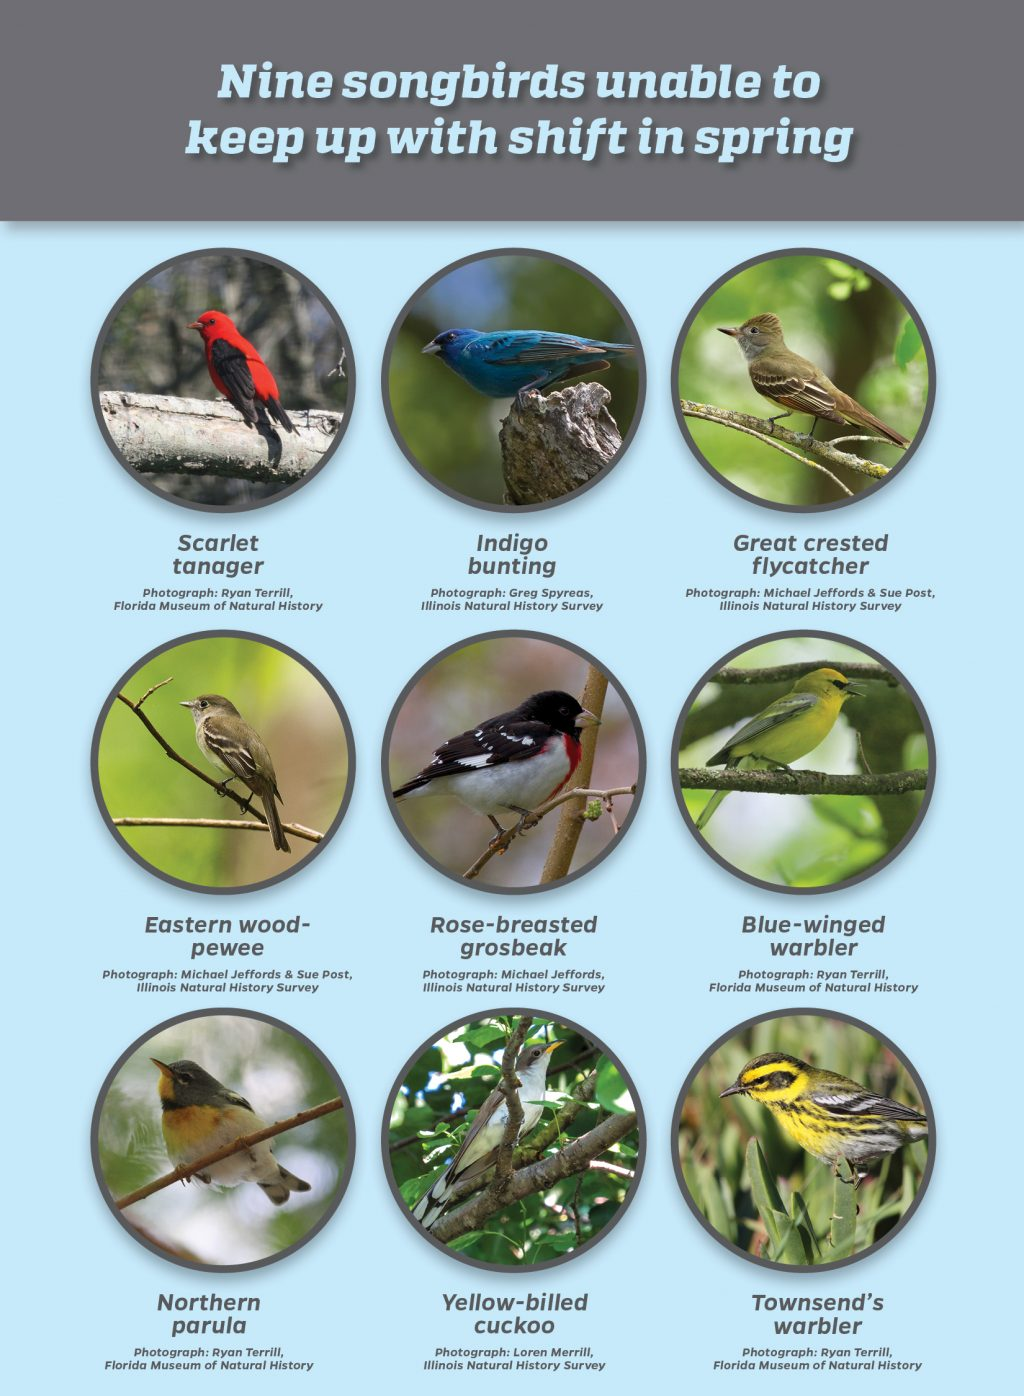 Nine songbird species